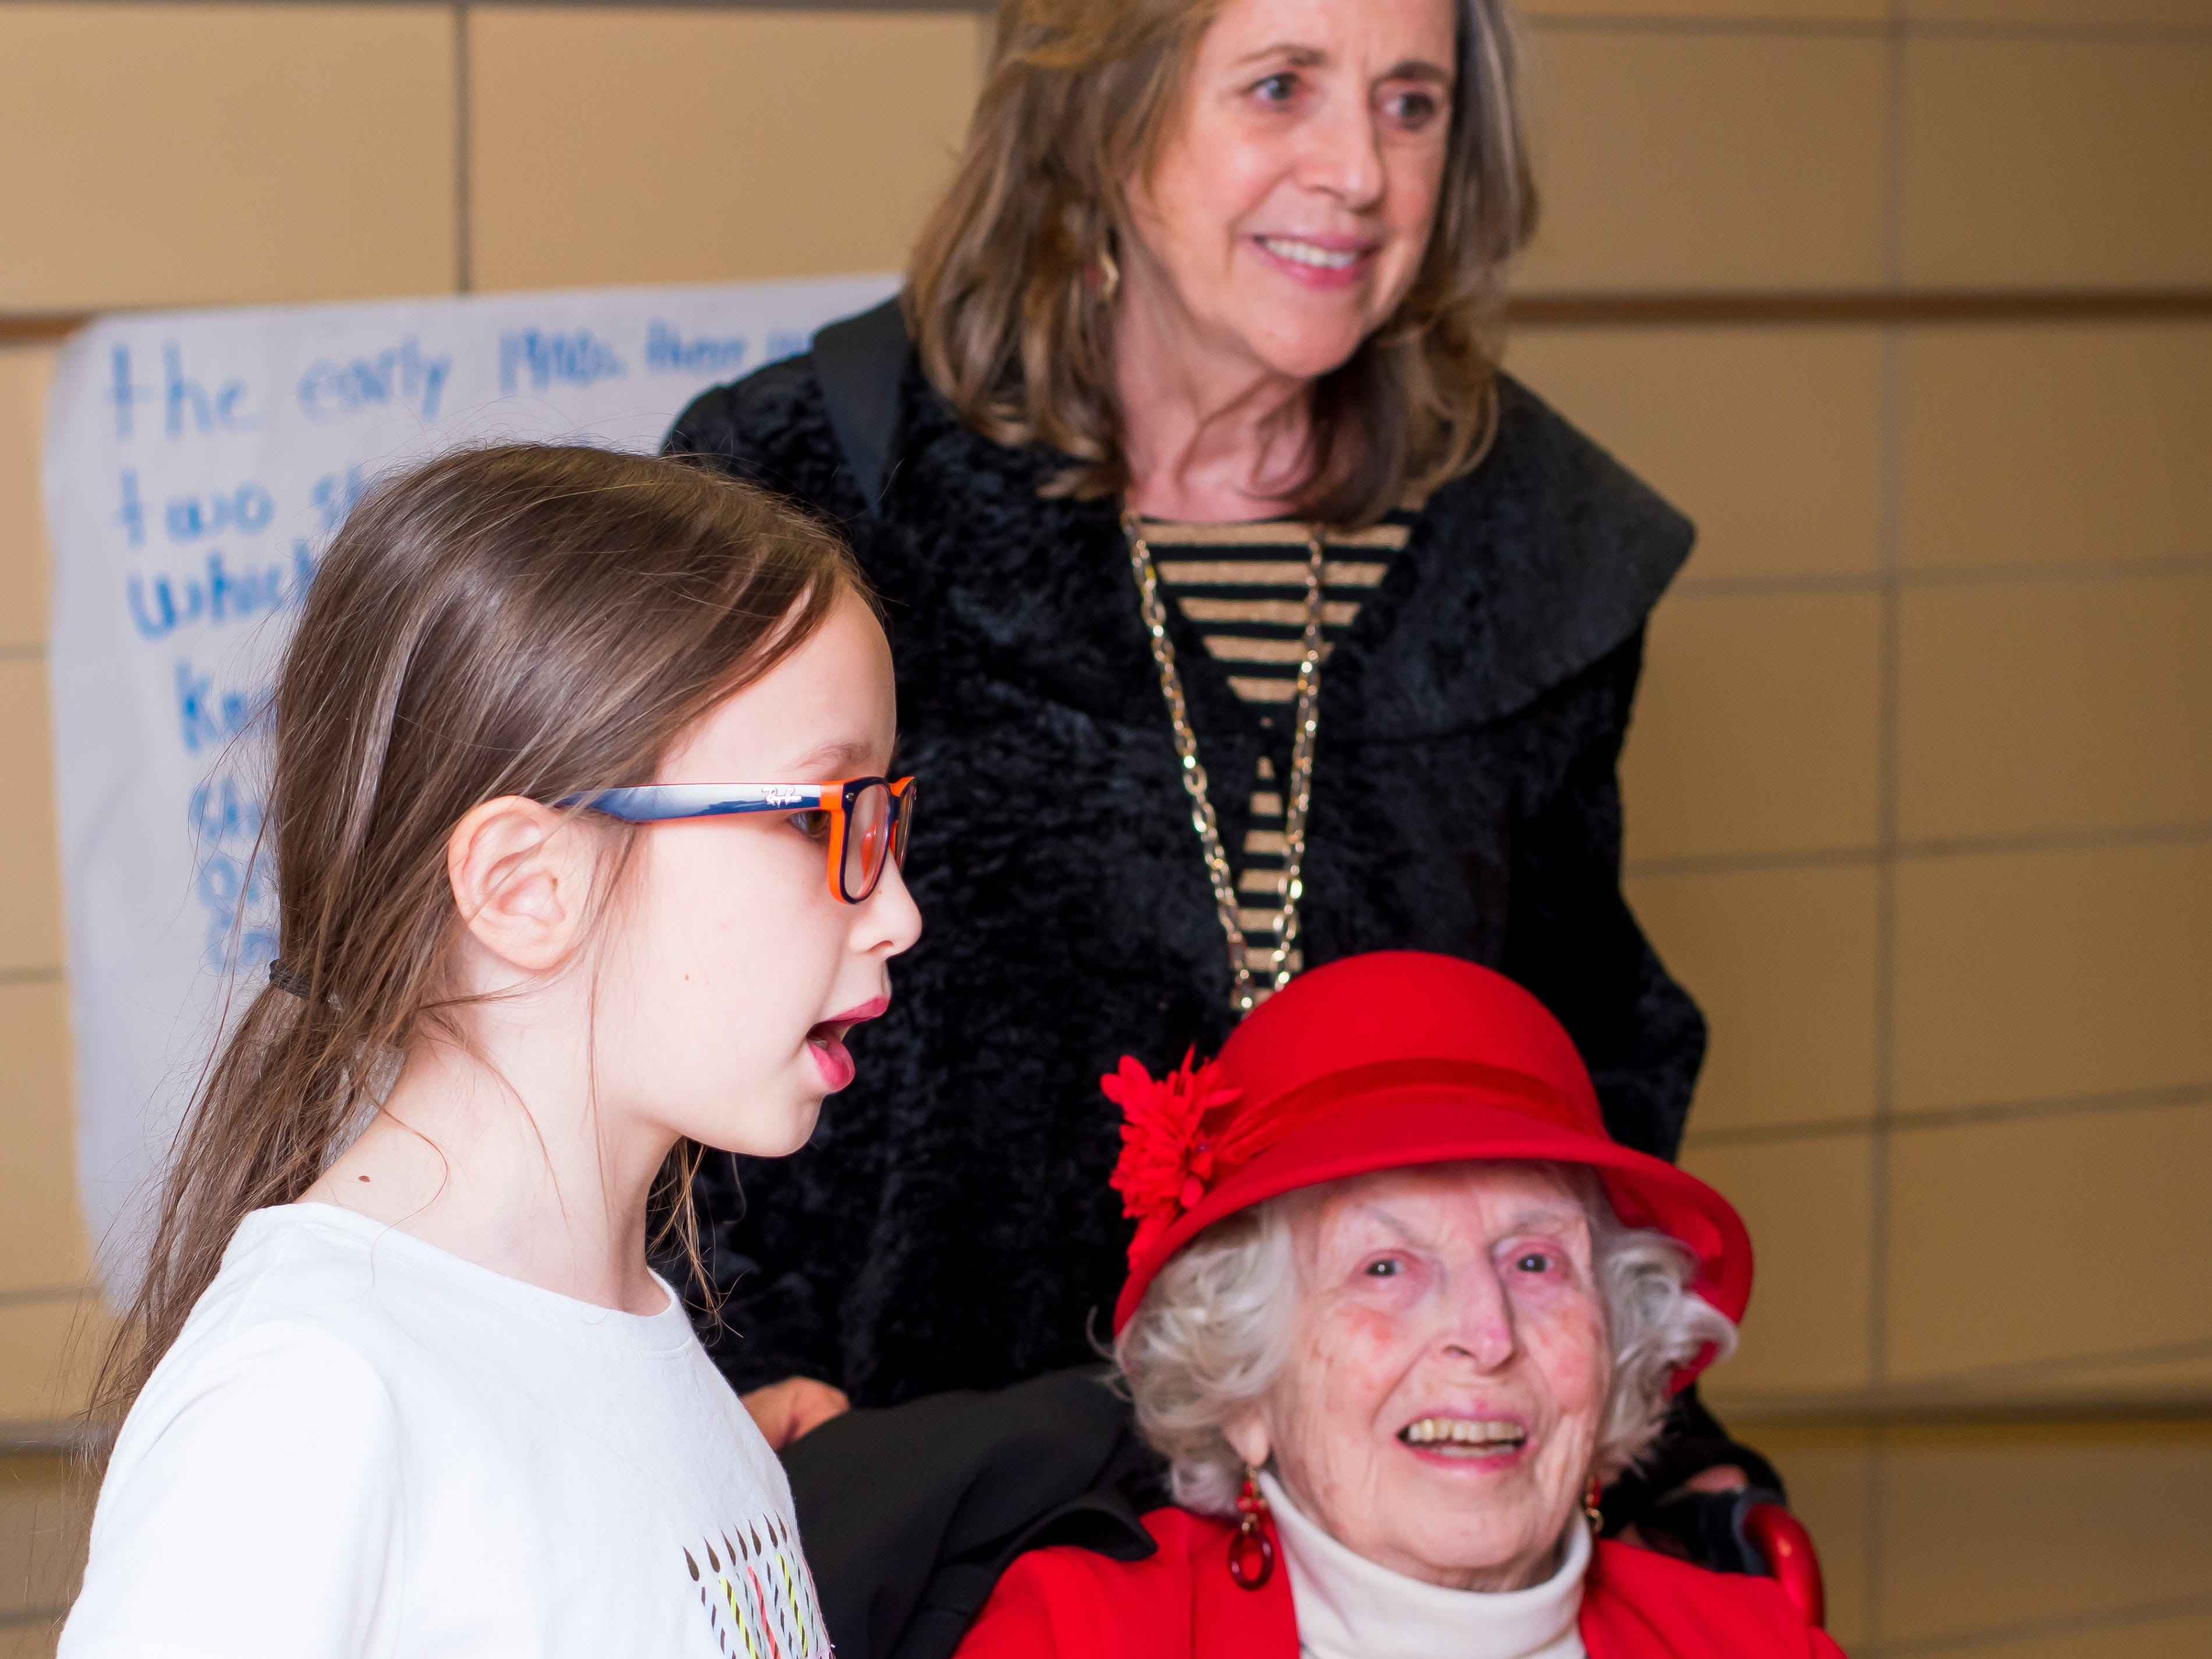 Amelia Lee, 9, of Clive takes WWII veteran Elaine Hamilton and Ann Reynolds throug the Celebrate Crestview timeline on Tuesday, Dec. 11, 2018 at Crestview School of Inquiry in Clive. Students learned the history of immigration in Clive and the impact it has had on Crestview.